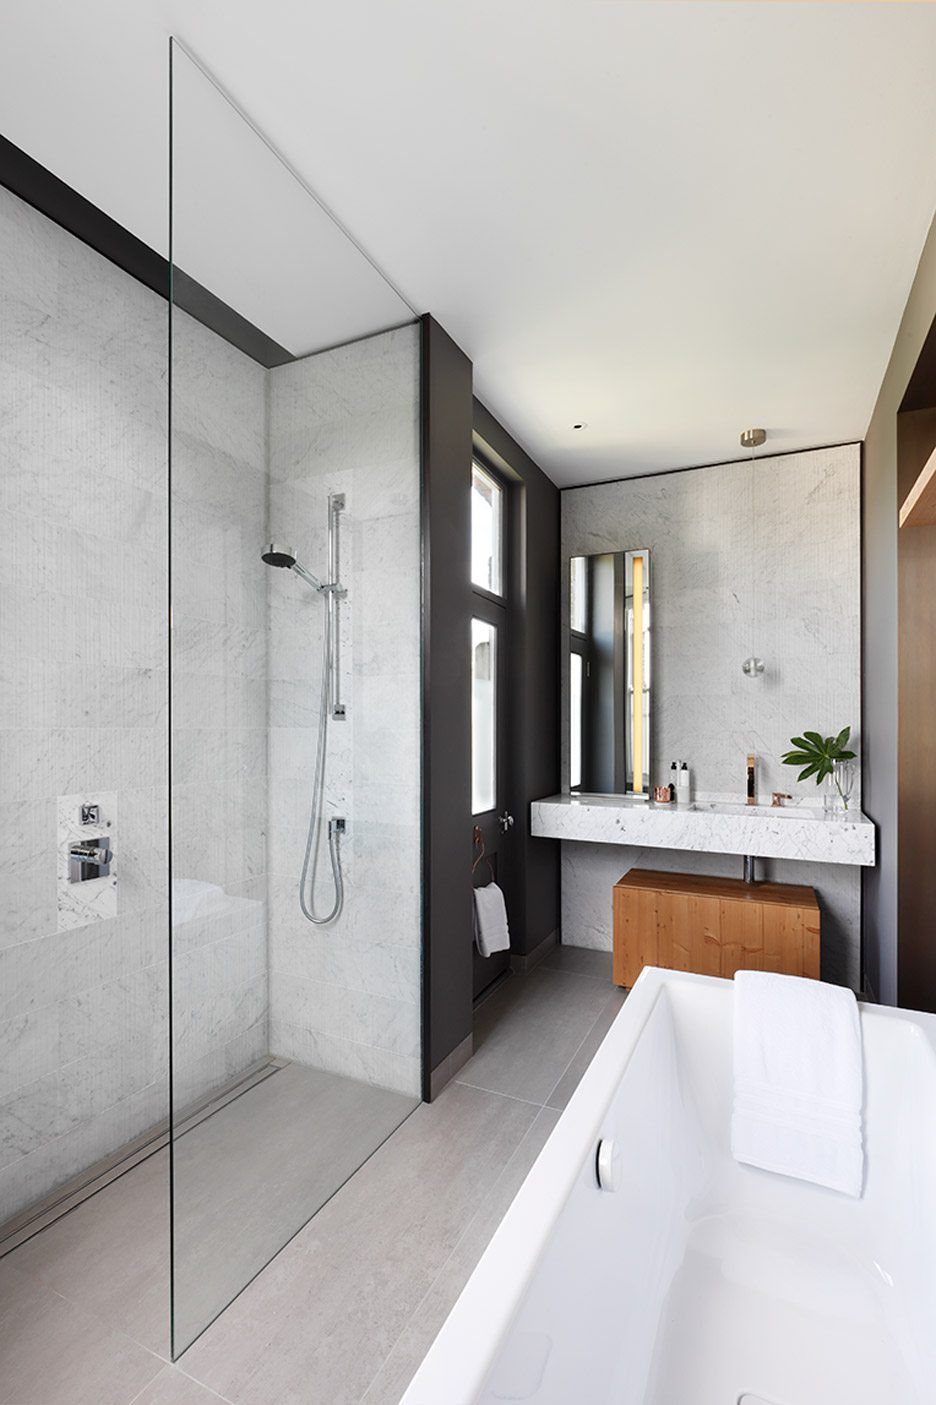 Modern Bathroom with Marble, Black and Wooden Accents